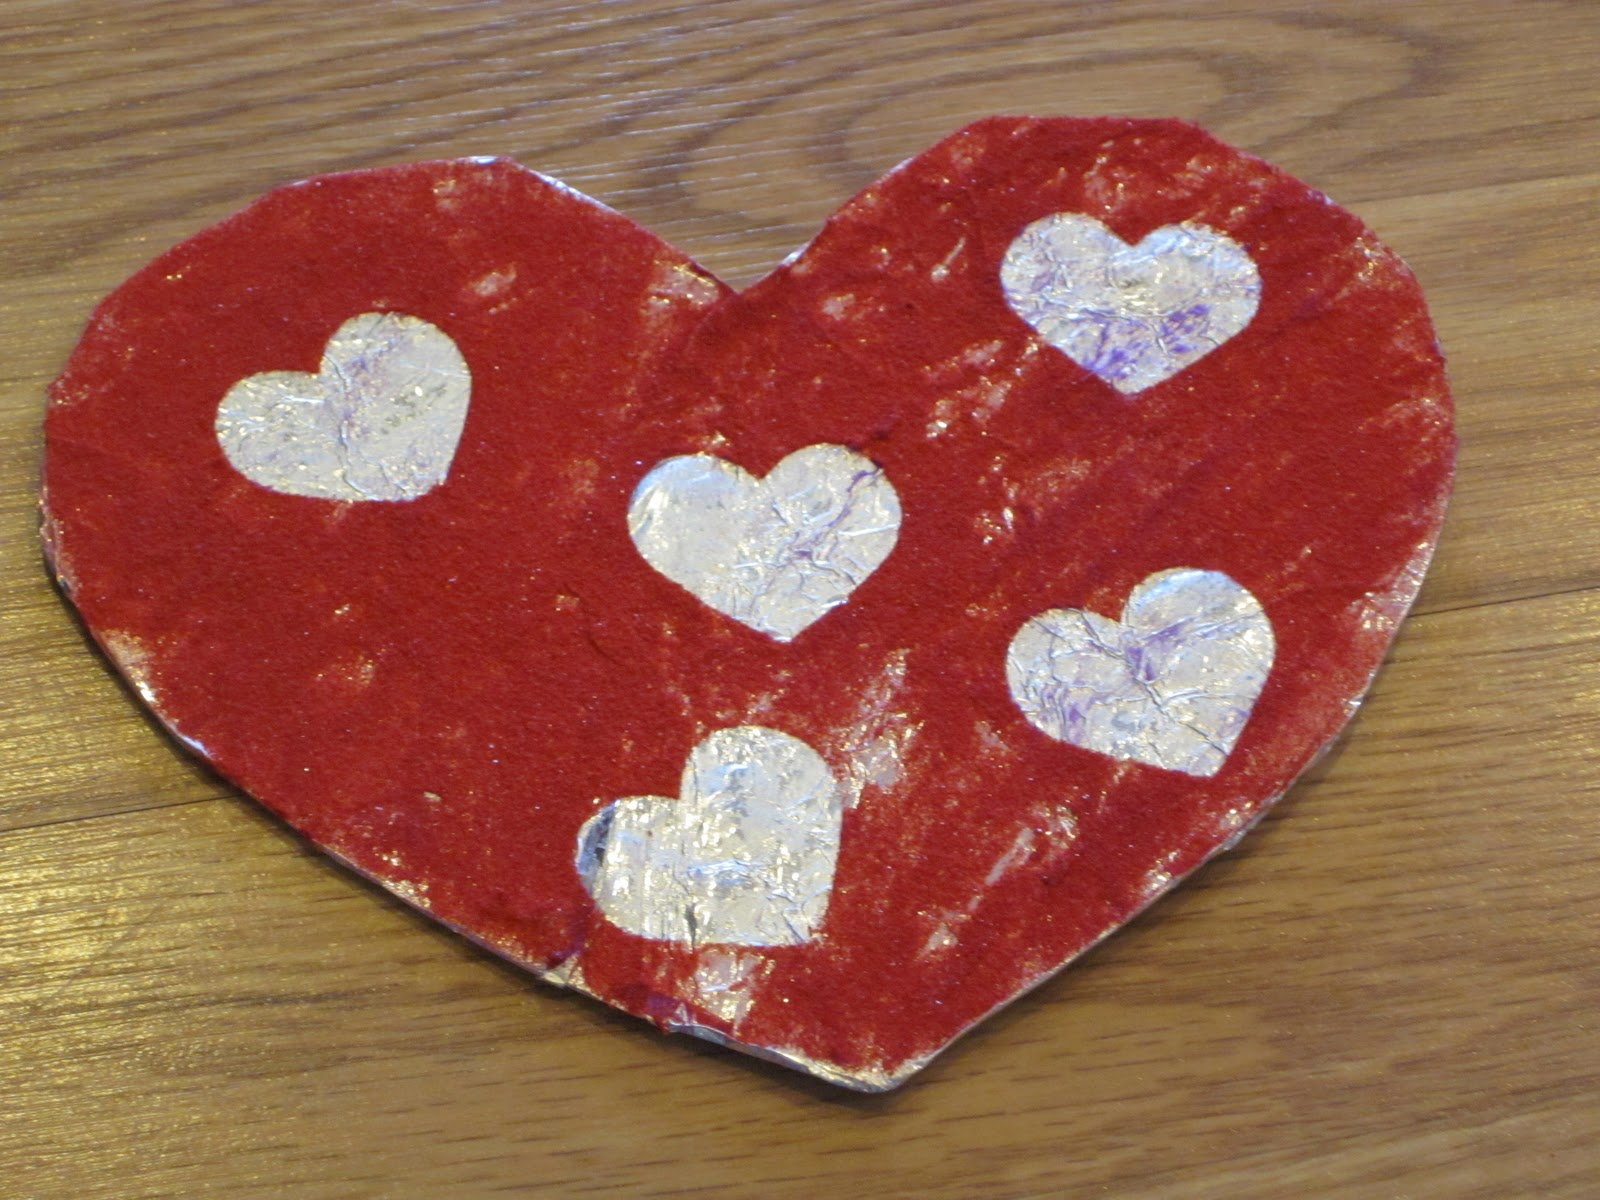 crafts for all abilities for ages 3 years and up Easy Crafts For Kids Age 3